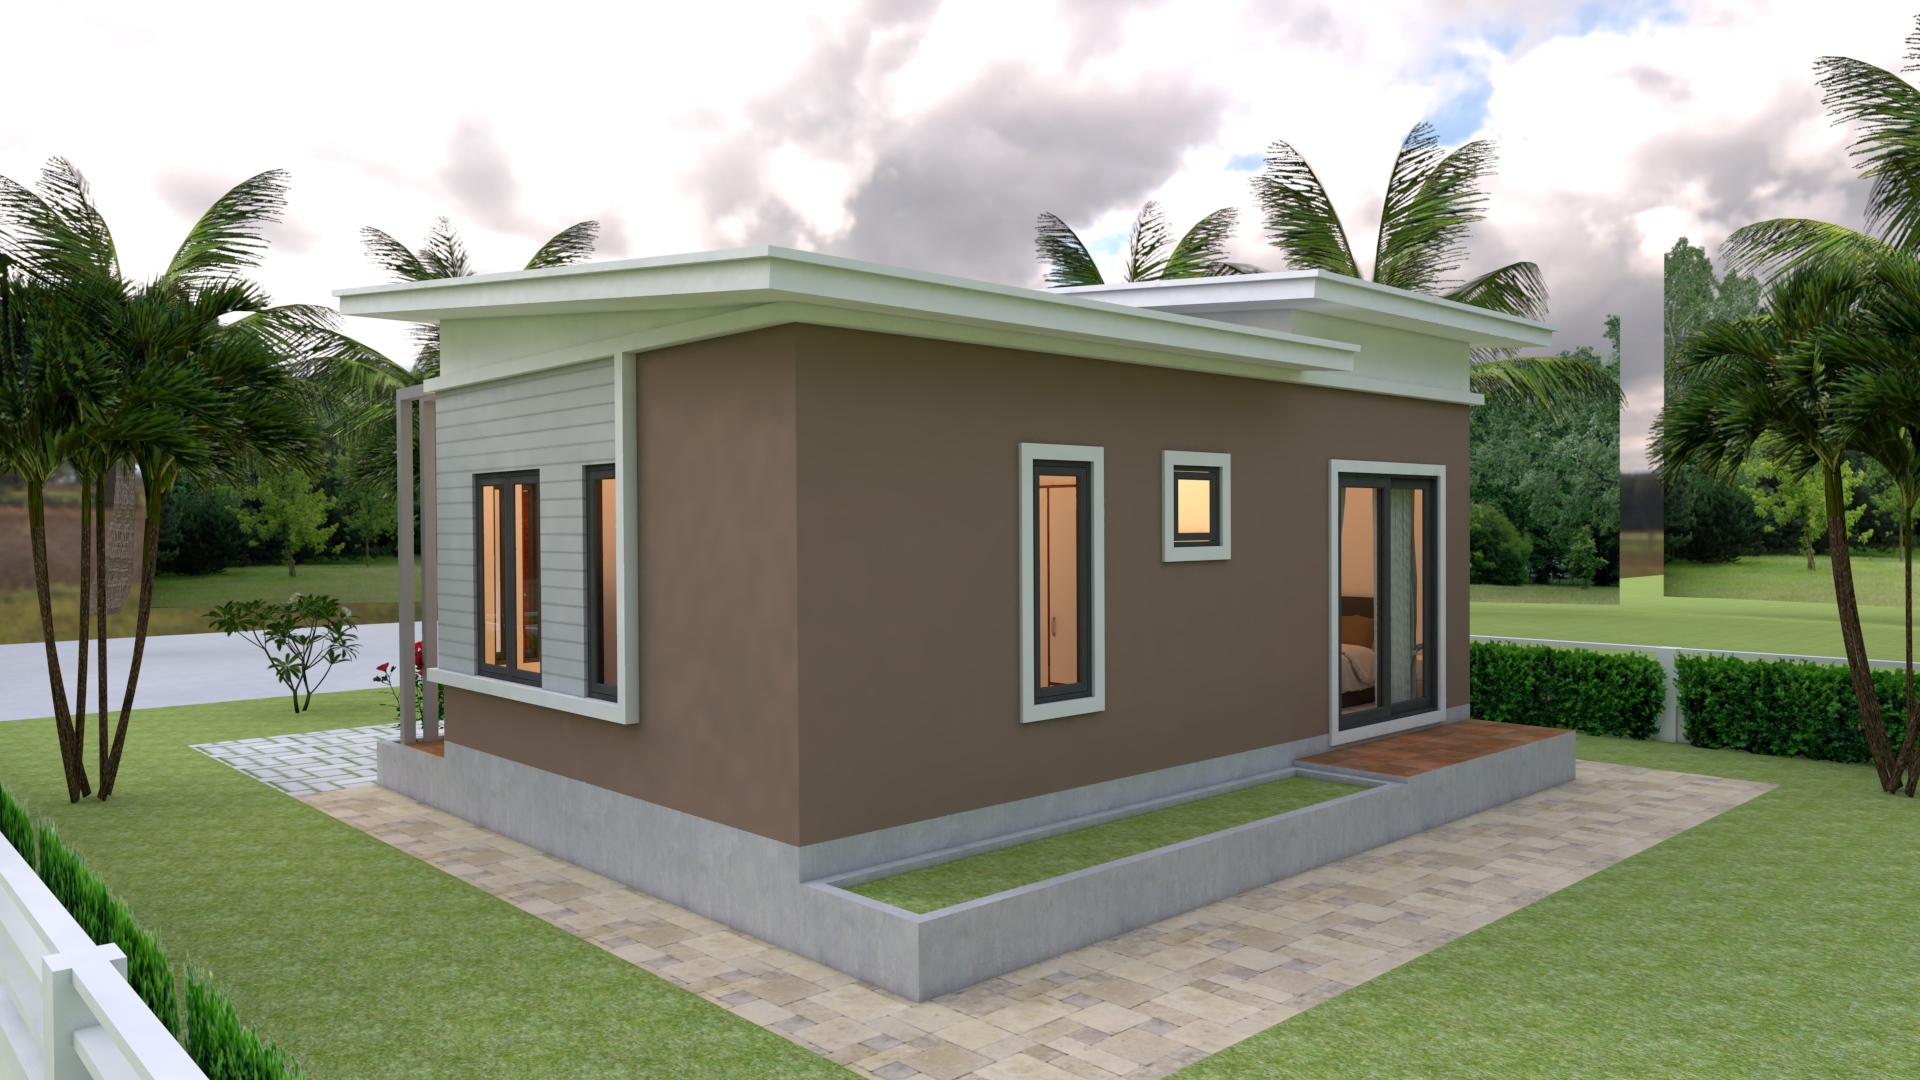 Tiny Home Layouts 8x6 Meter 26x20 Feet 2 Beds 5